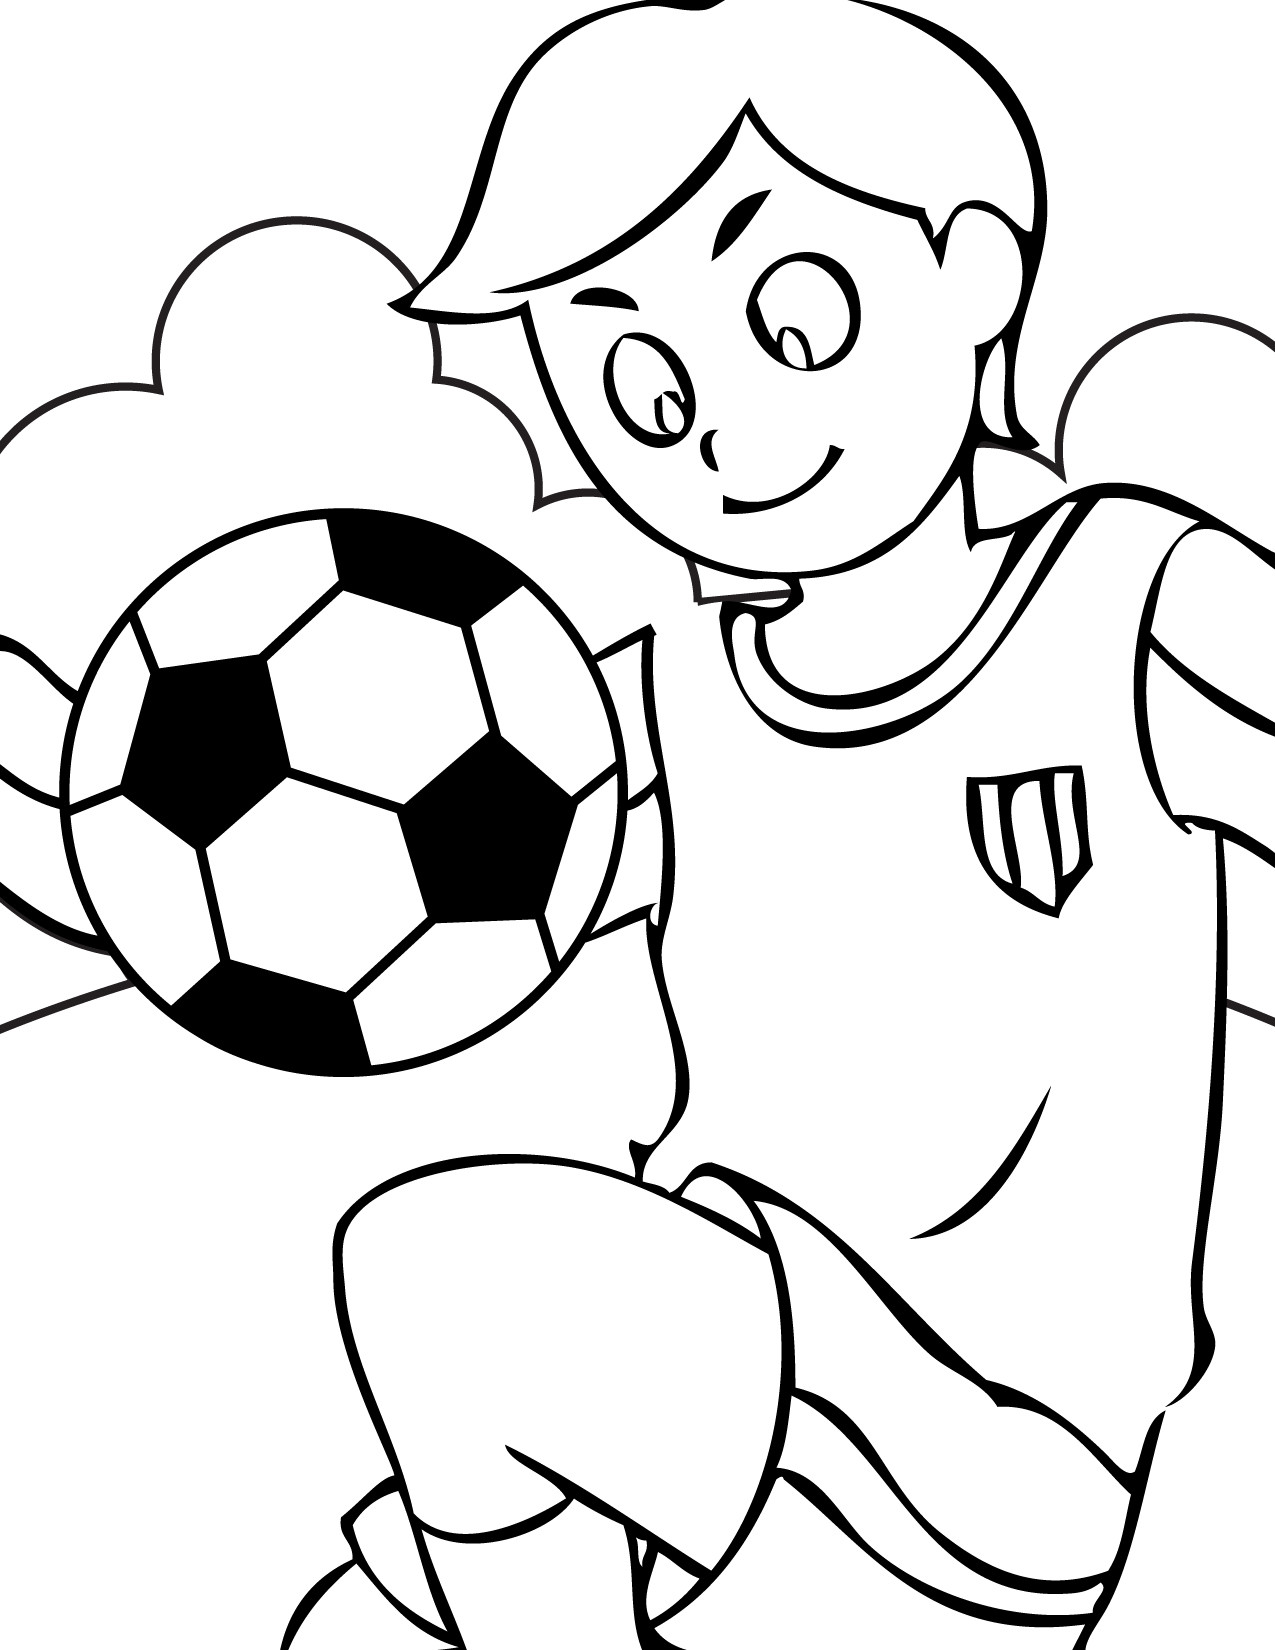 Coloring Pages Kids  Free Printable Sports Coloring Pages For Kids